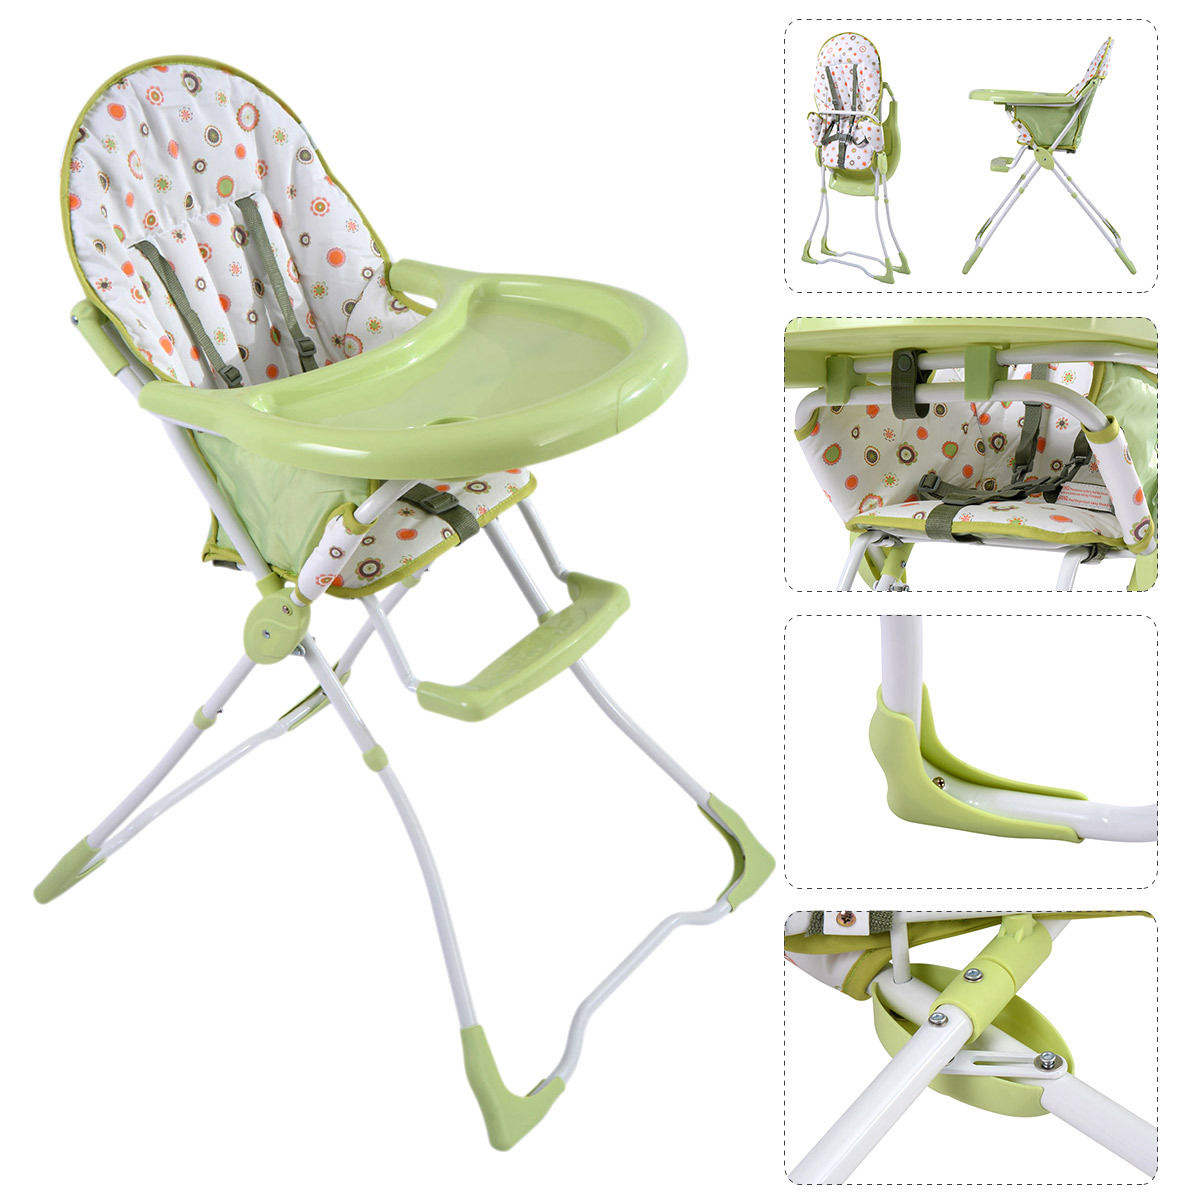 Baby High Chair Infant Toddler Feeding Booster Seat Folding Safety Portable by Costway